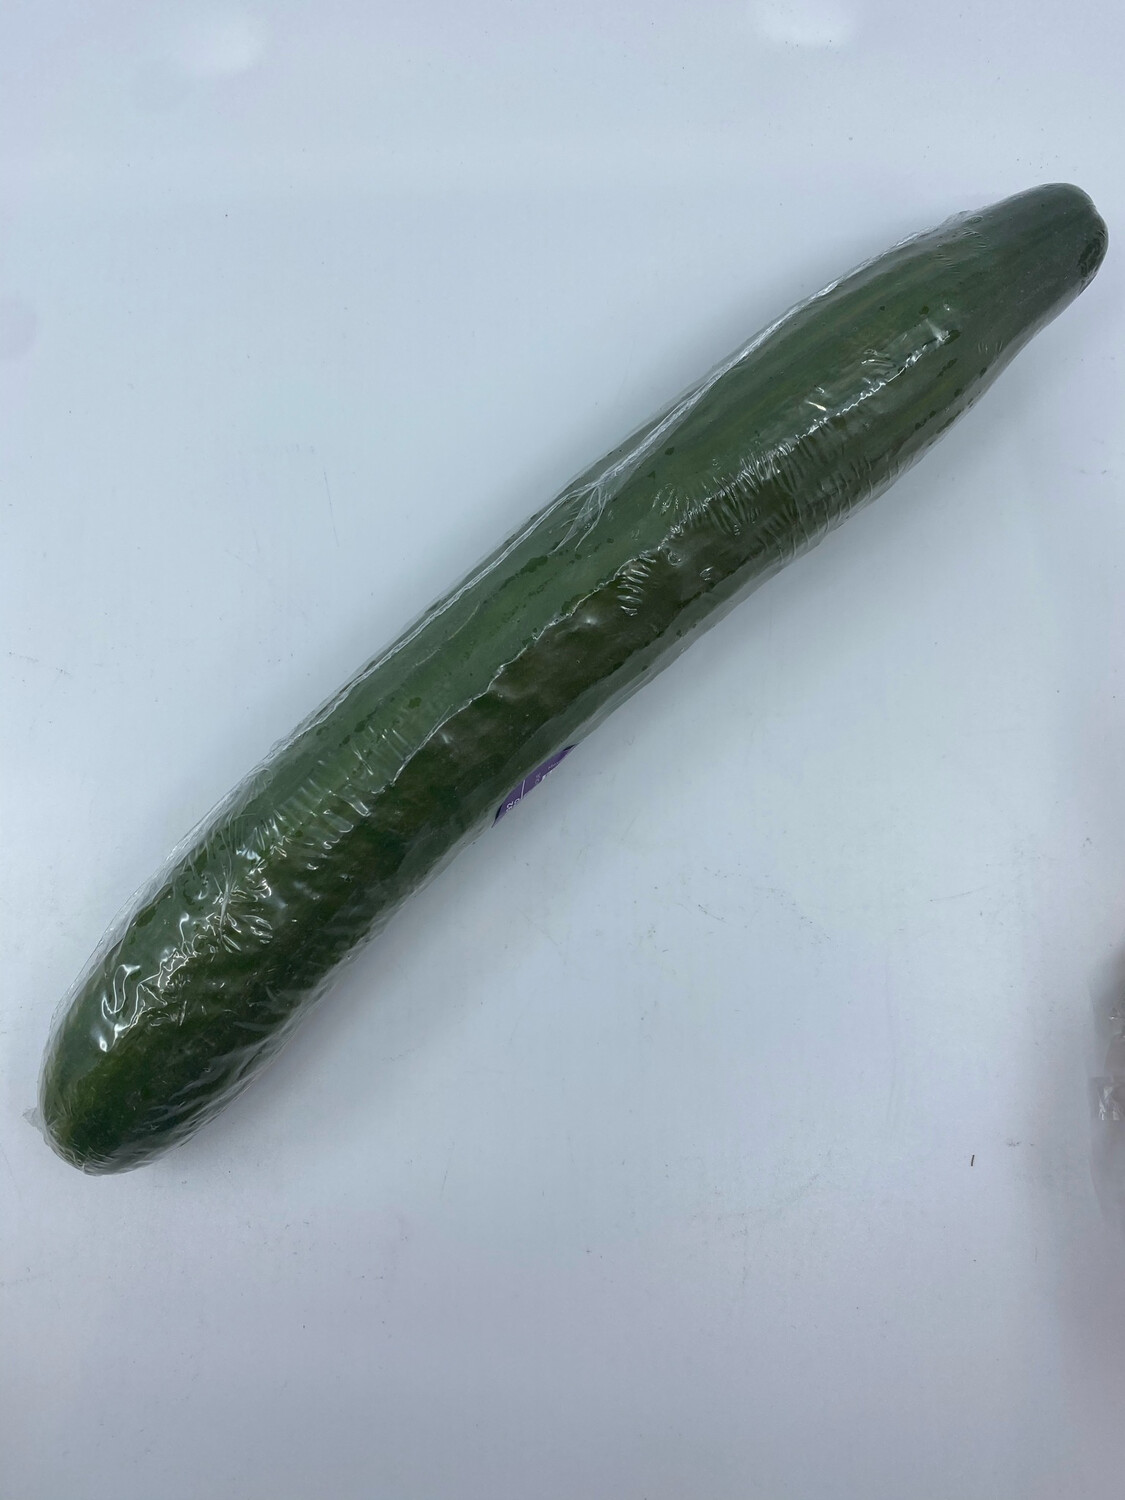 OG Cucumber seedless, greenhouse